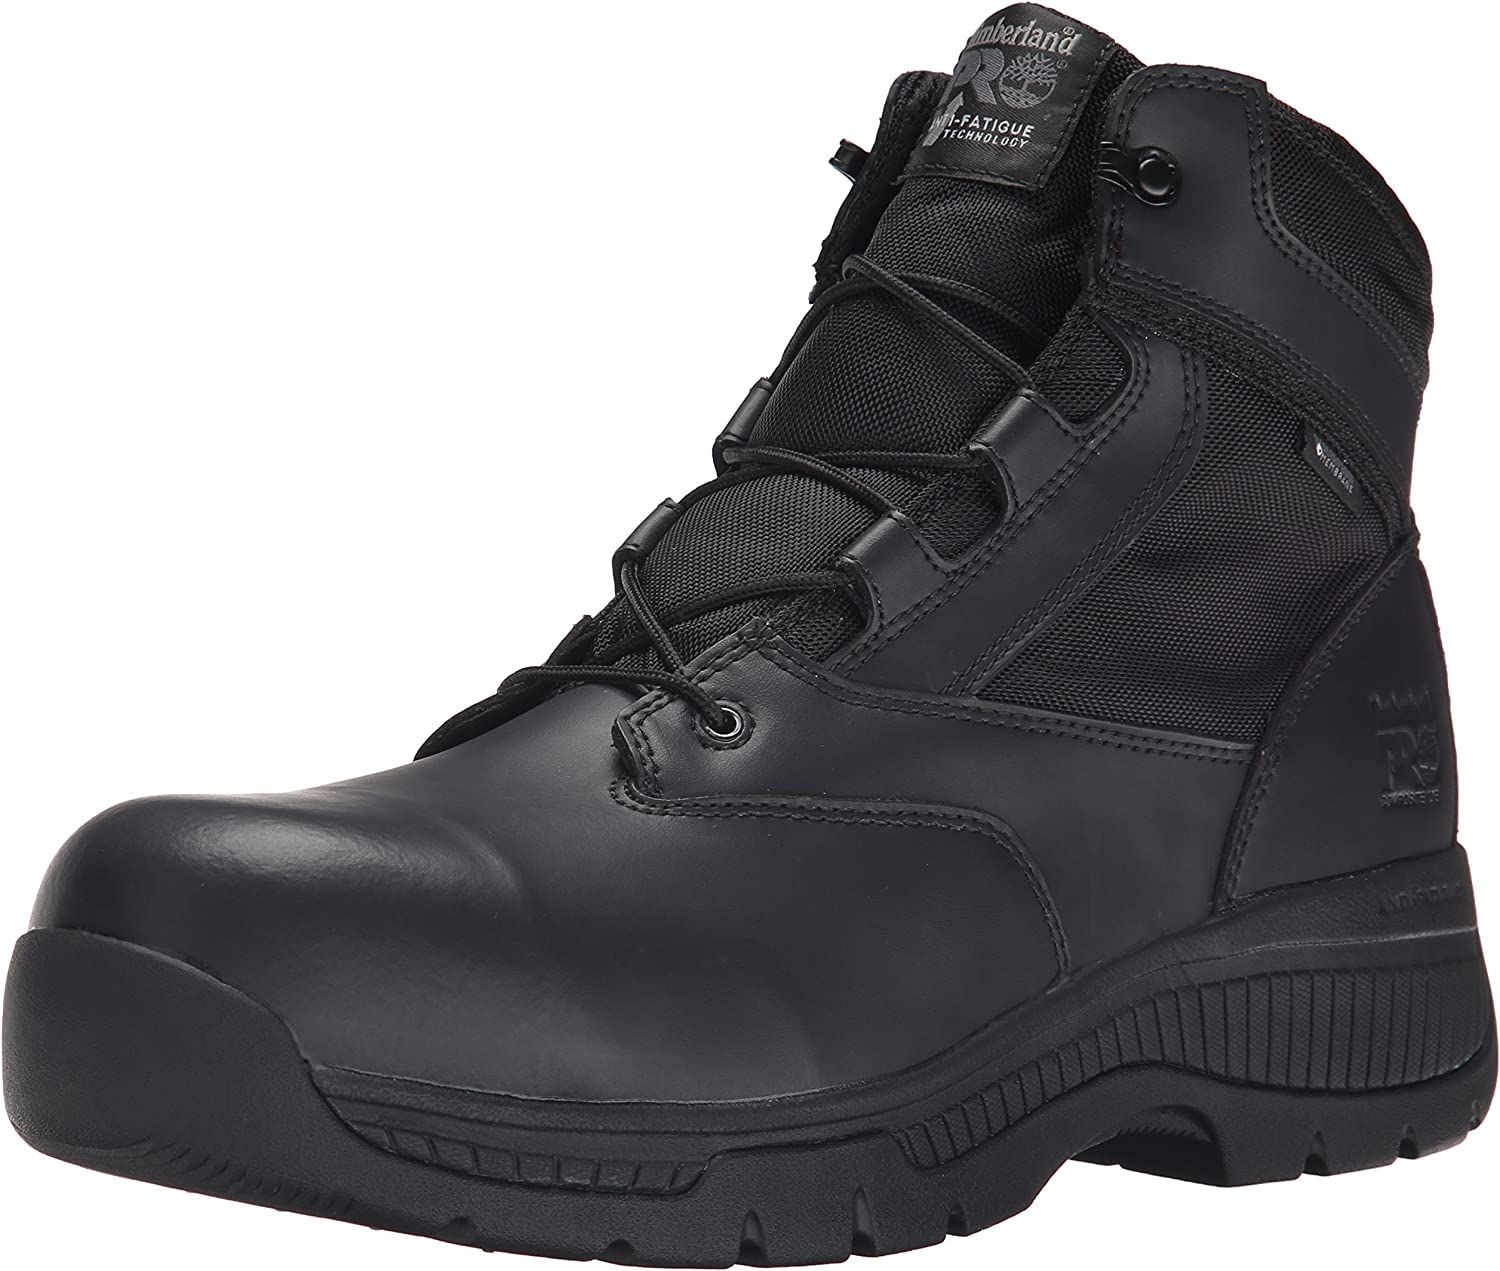 Timberland PRO Men's 6 Inch Valor Comp Toe Waterproof Side Zip Work Boot, Black Smooth Leather Ballistic Nylon, 15 W US